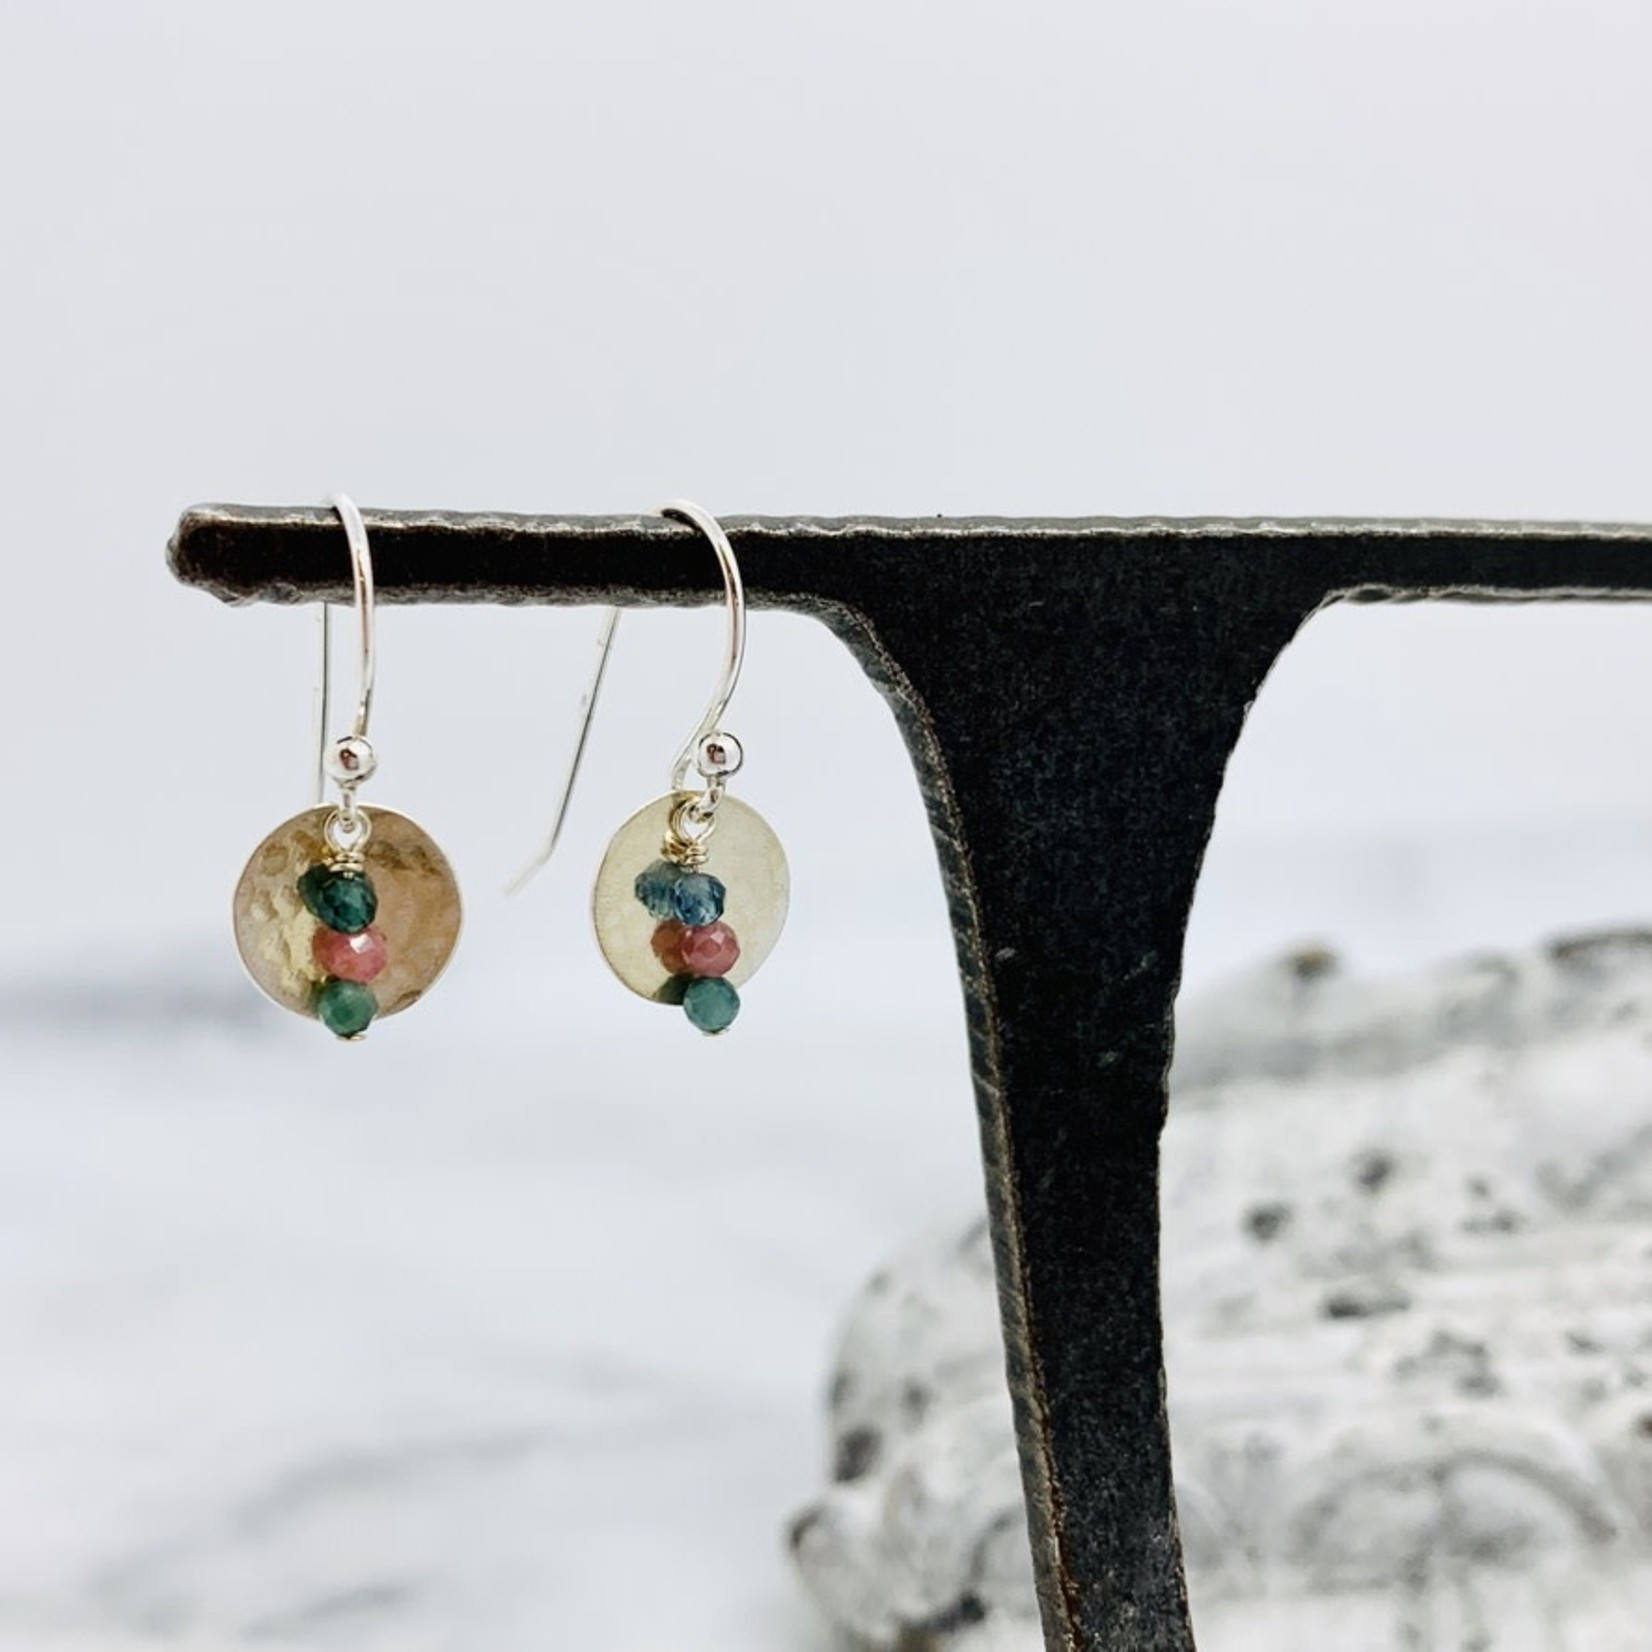 EVANKNOX Handmade Earrings with hammered disc, stack 3 tourmaline